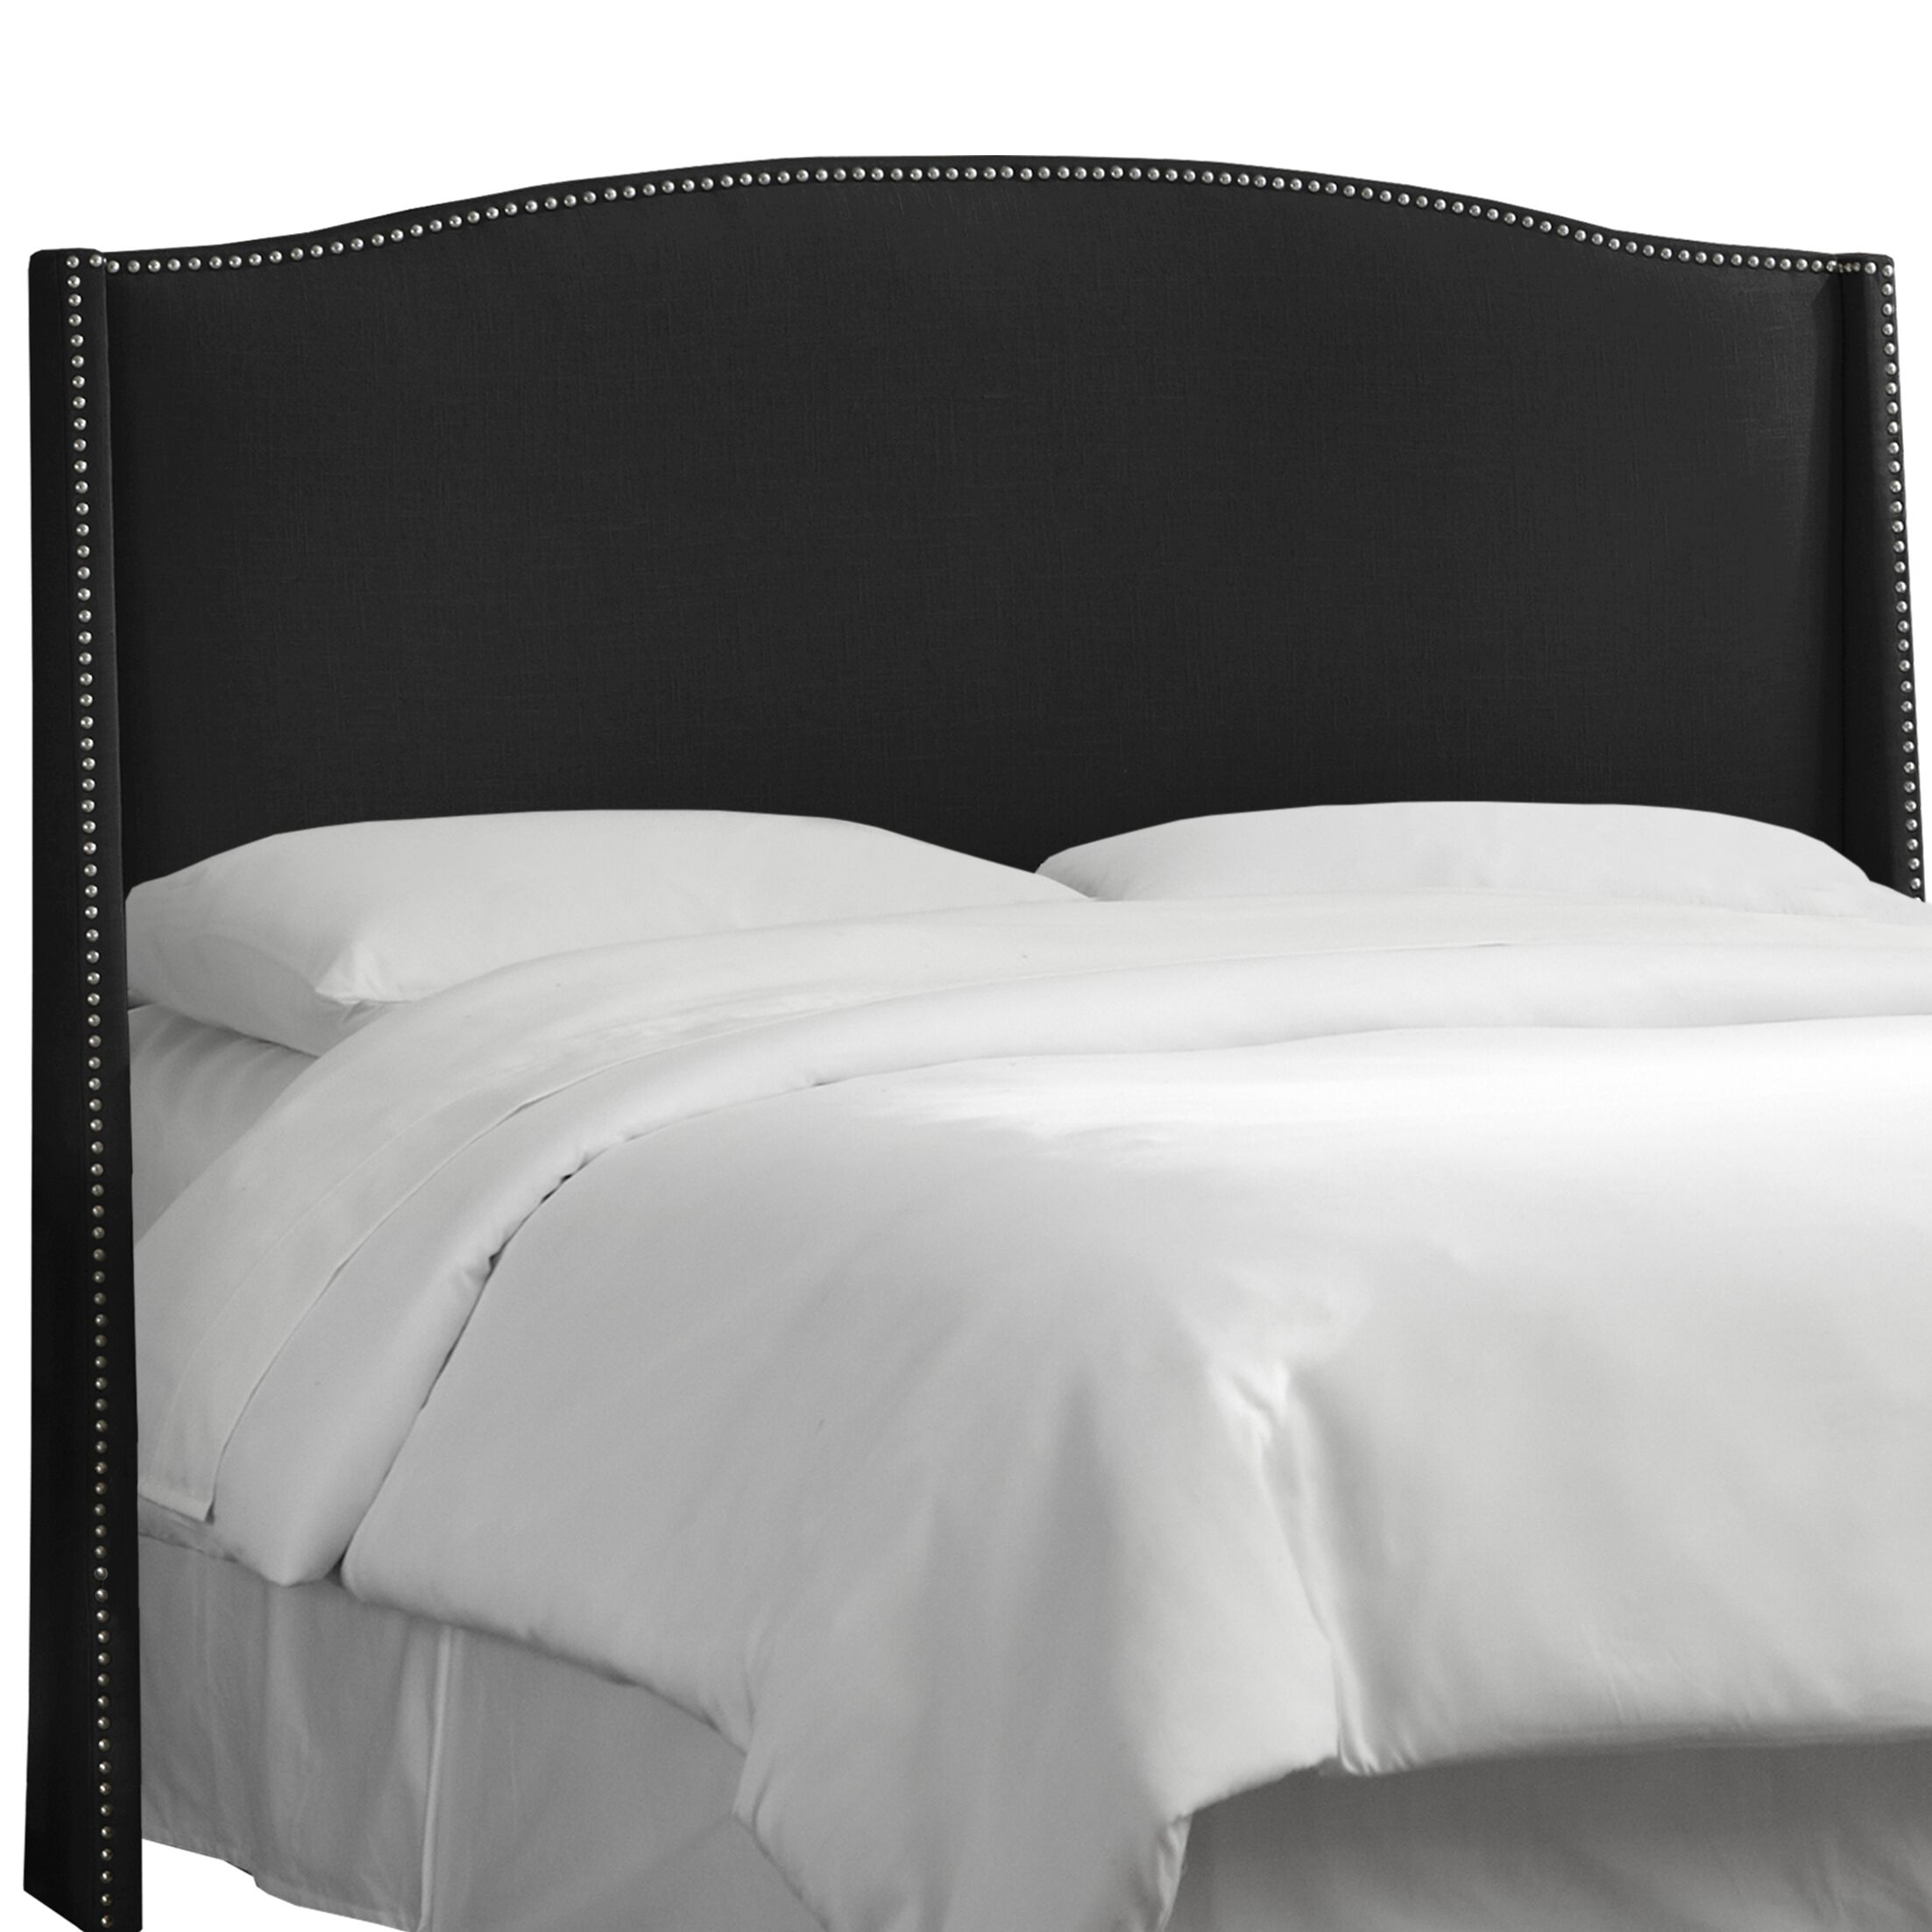 Adamczyk Wingback Headboard Size: Full, Upholstery Color: Black